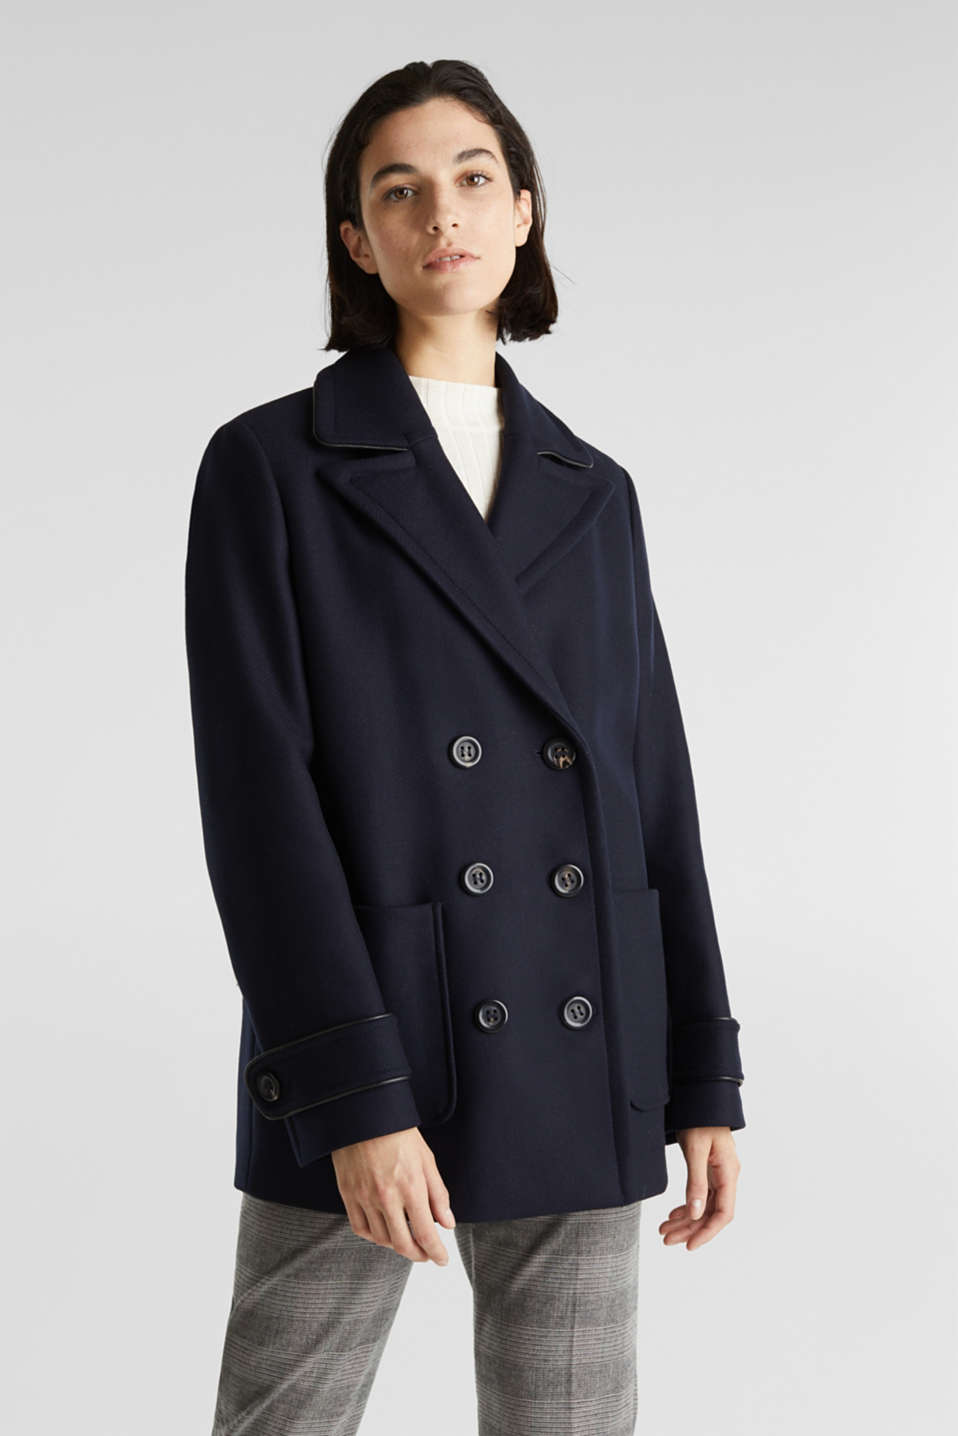 Esprit - Made of blended wool: pea jacket with piping